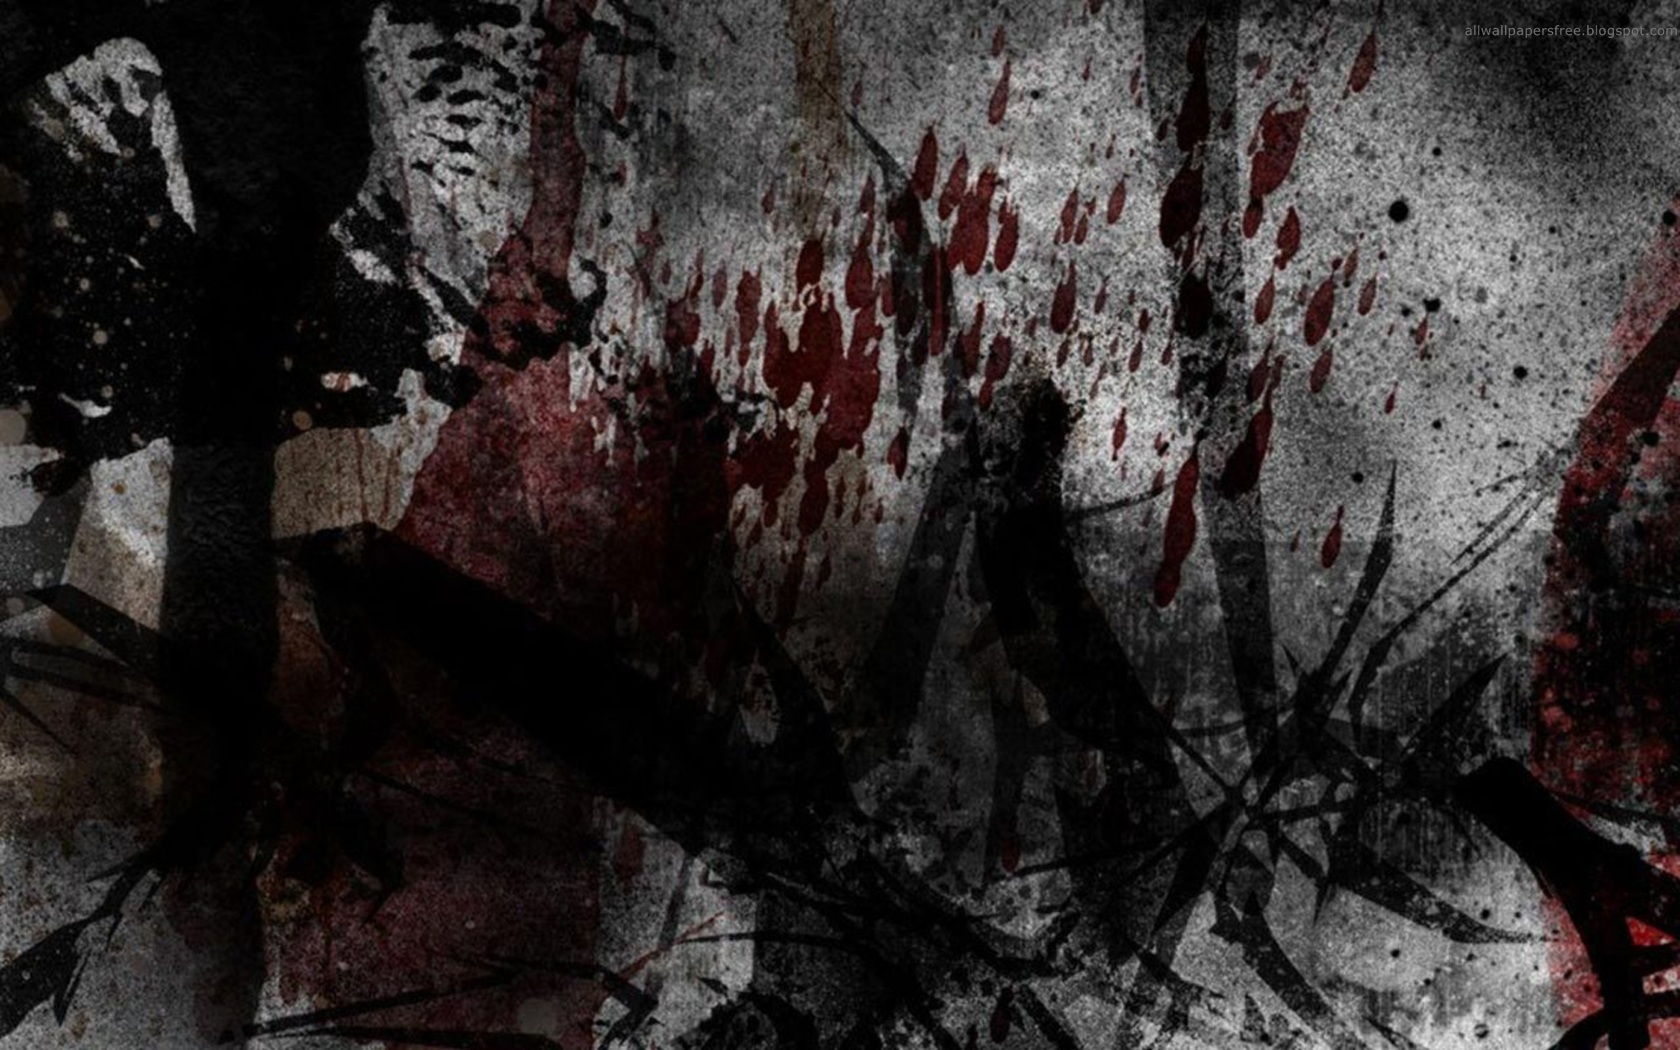 45+] Dark Horror Wallpaper on WallpaperSafari